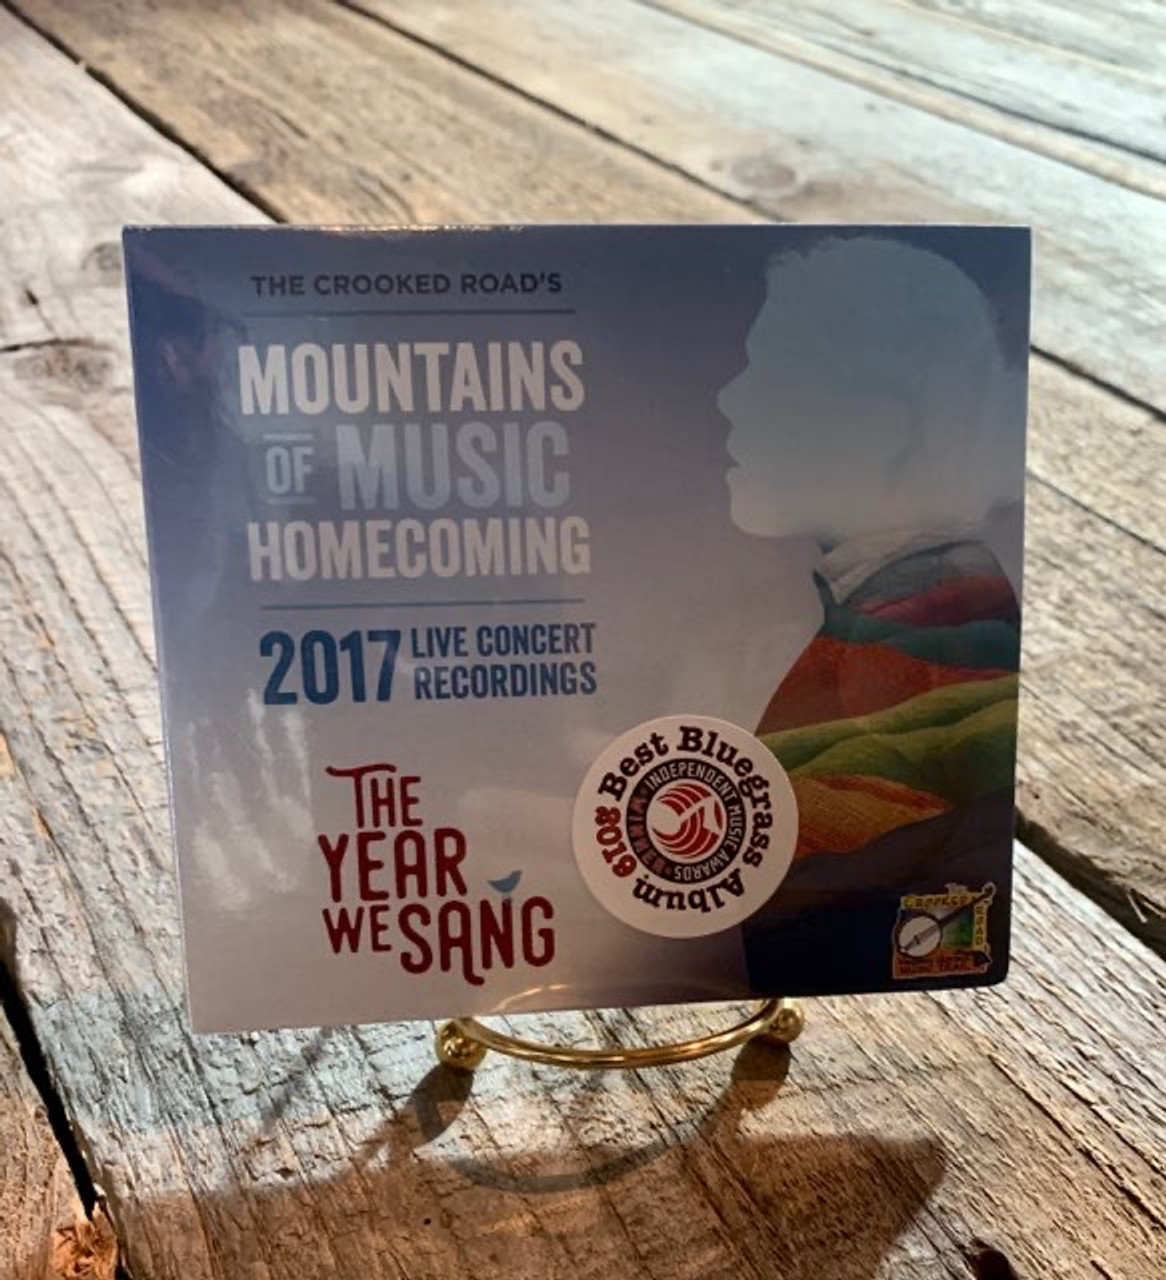 MOUNTAINS OF MUSIC HOMECOMING 2017